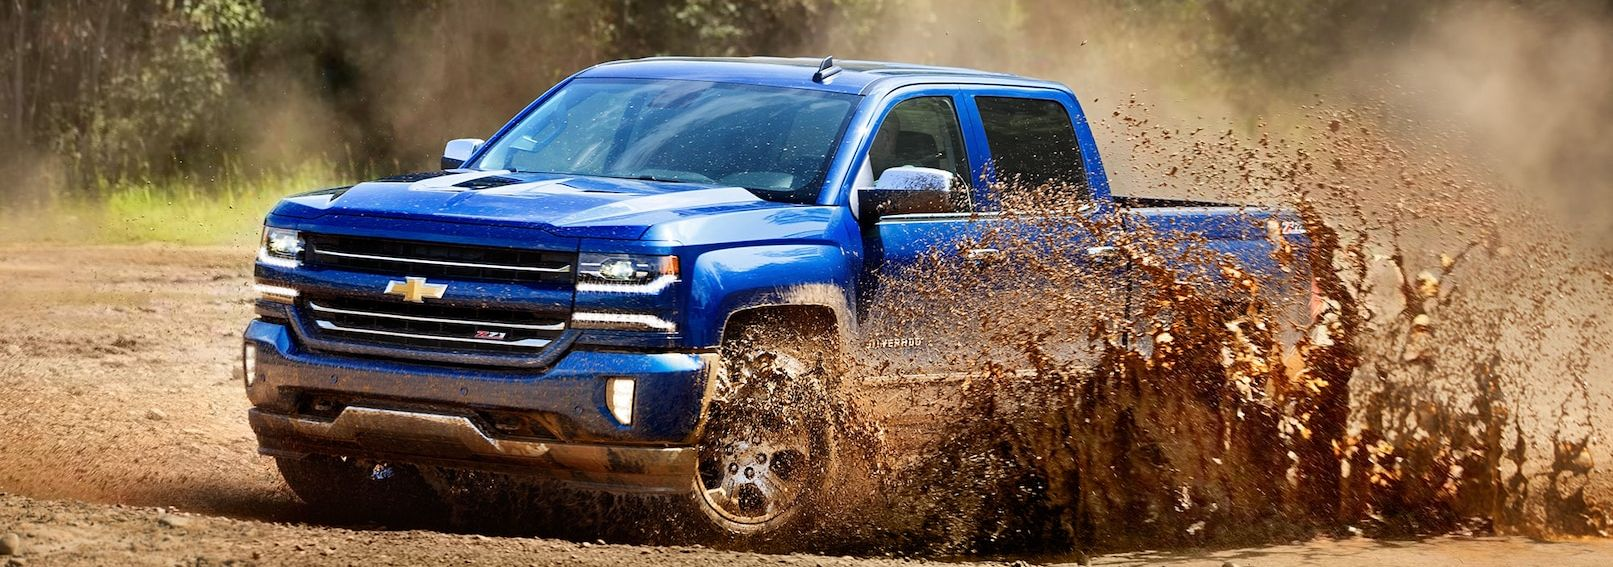 2019 Chevrolet Silverado 1500 Leasing near Merrillville, IN